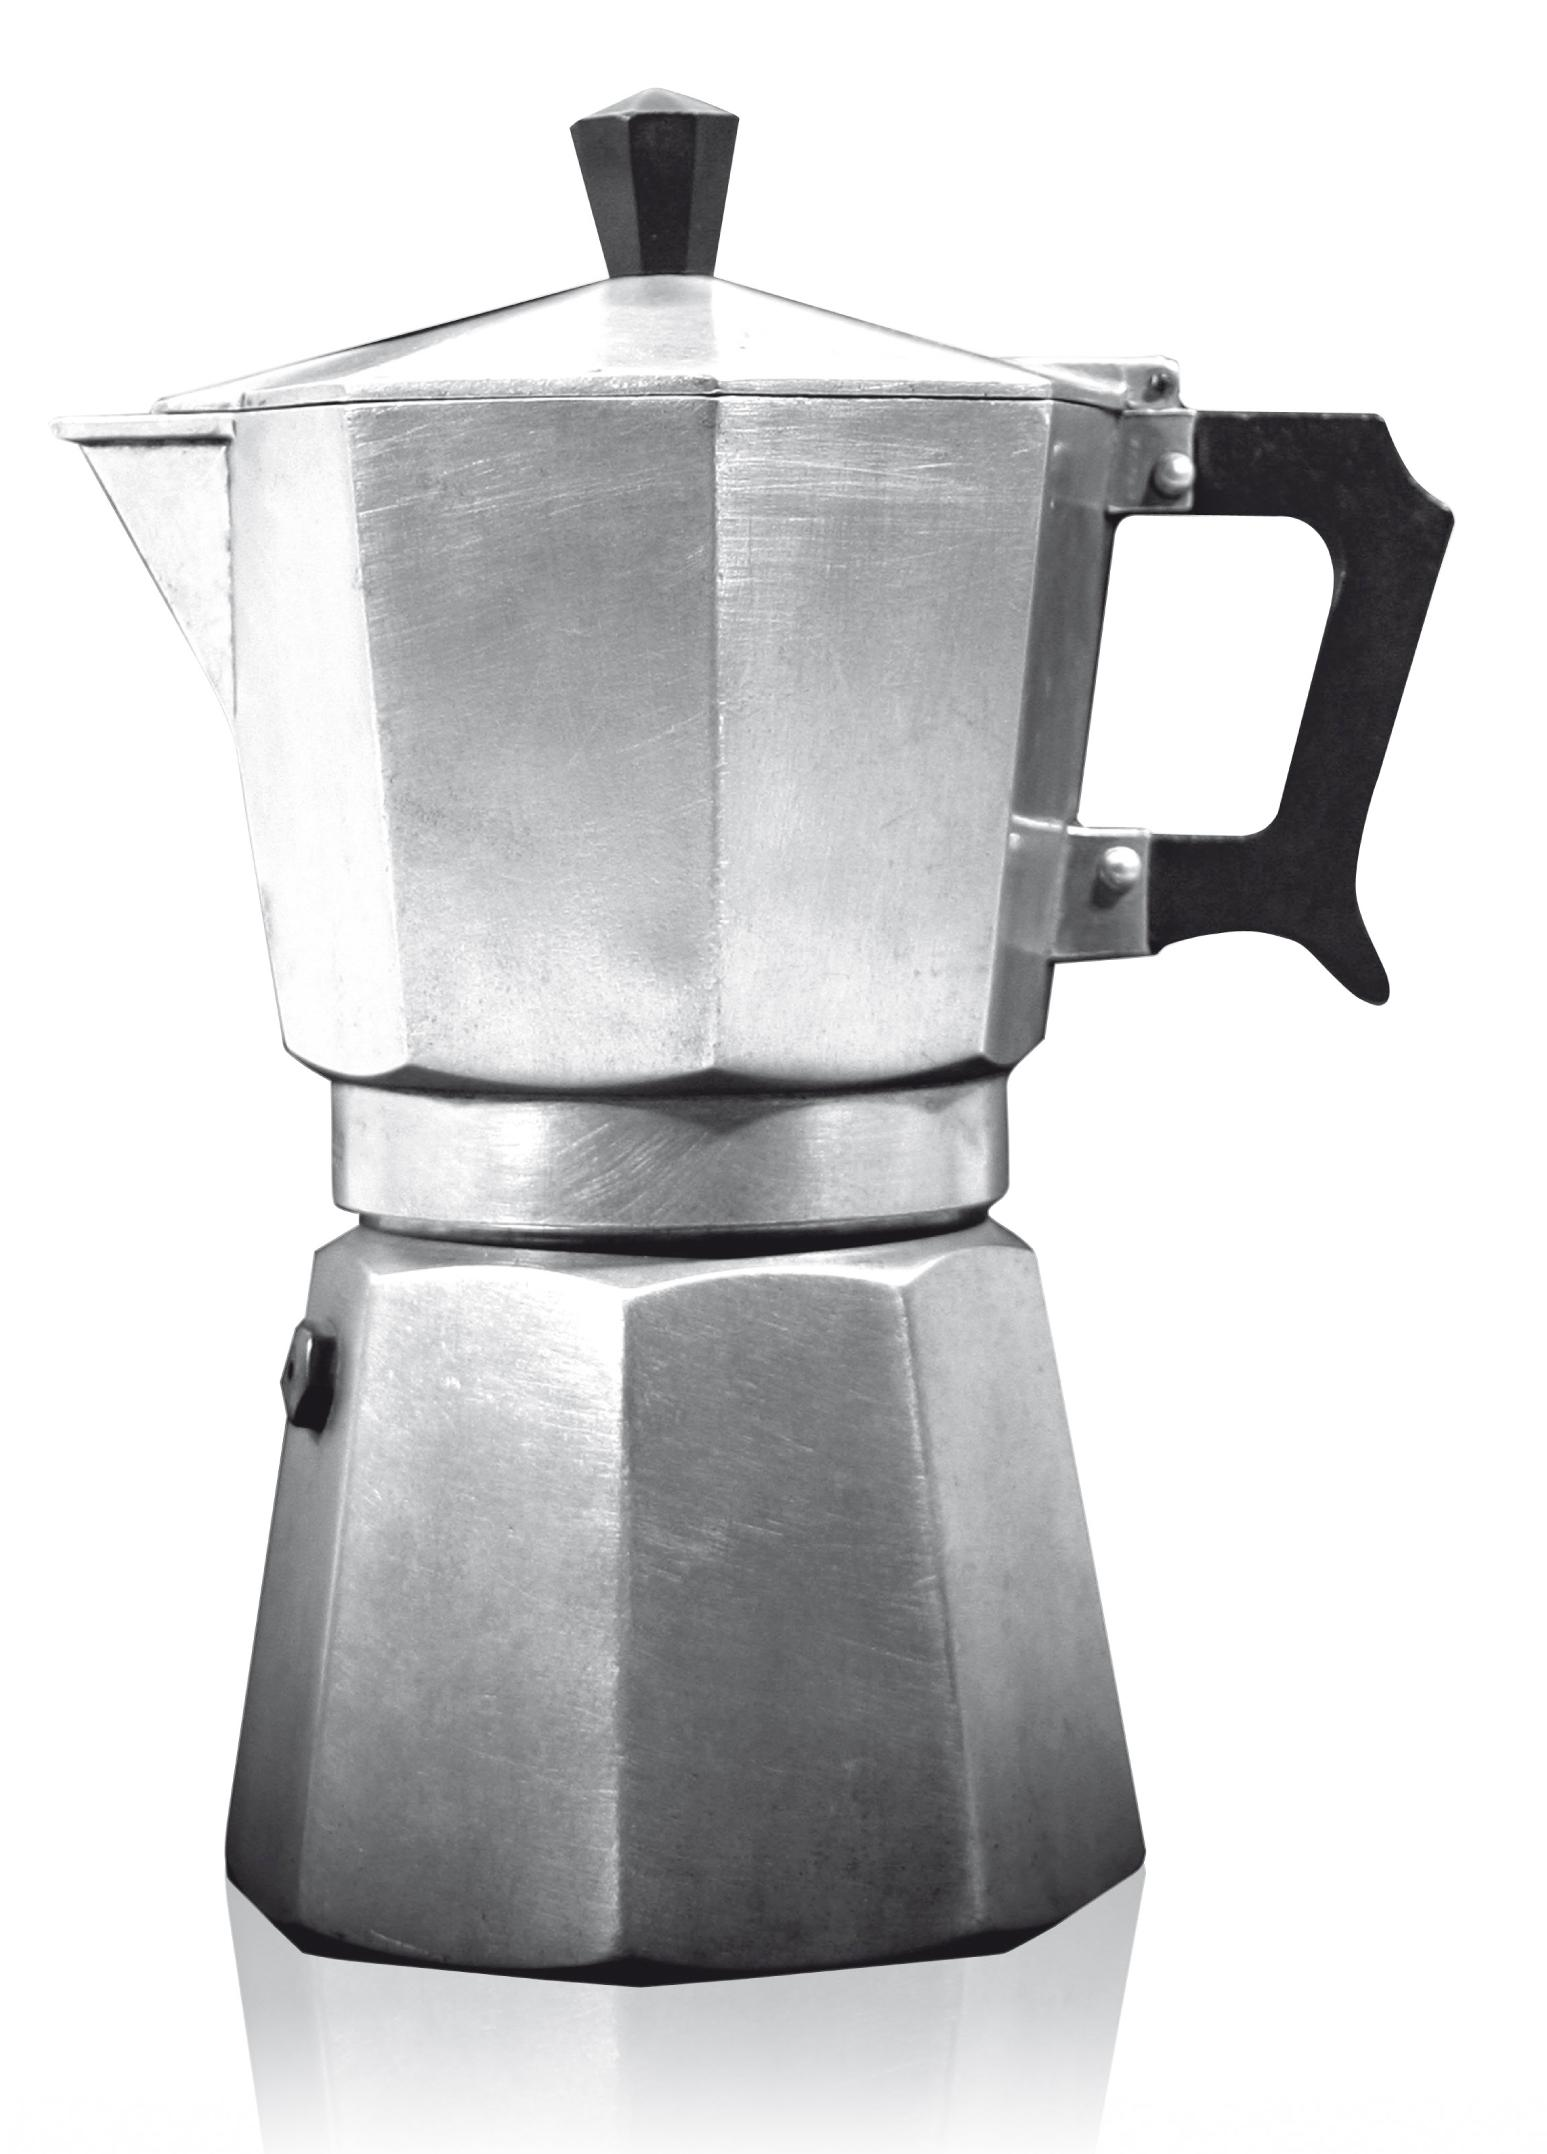 Amazon Com Bialetti 06905 6 Cup Espresso Coffee Maker